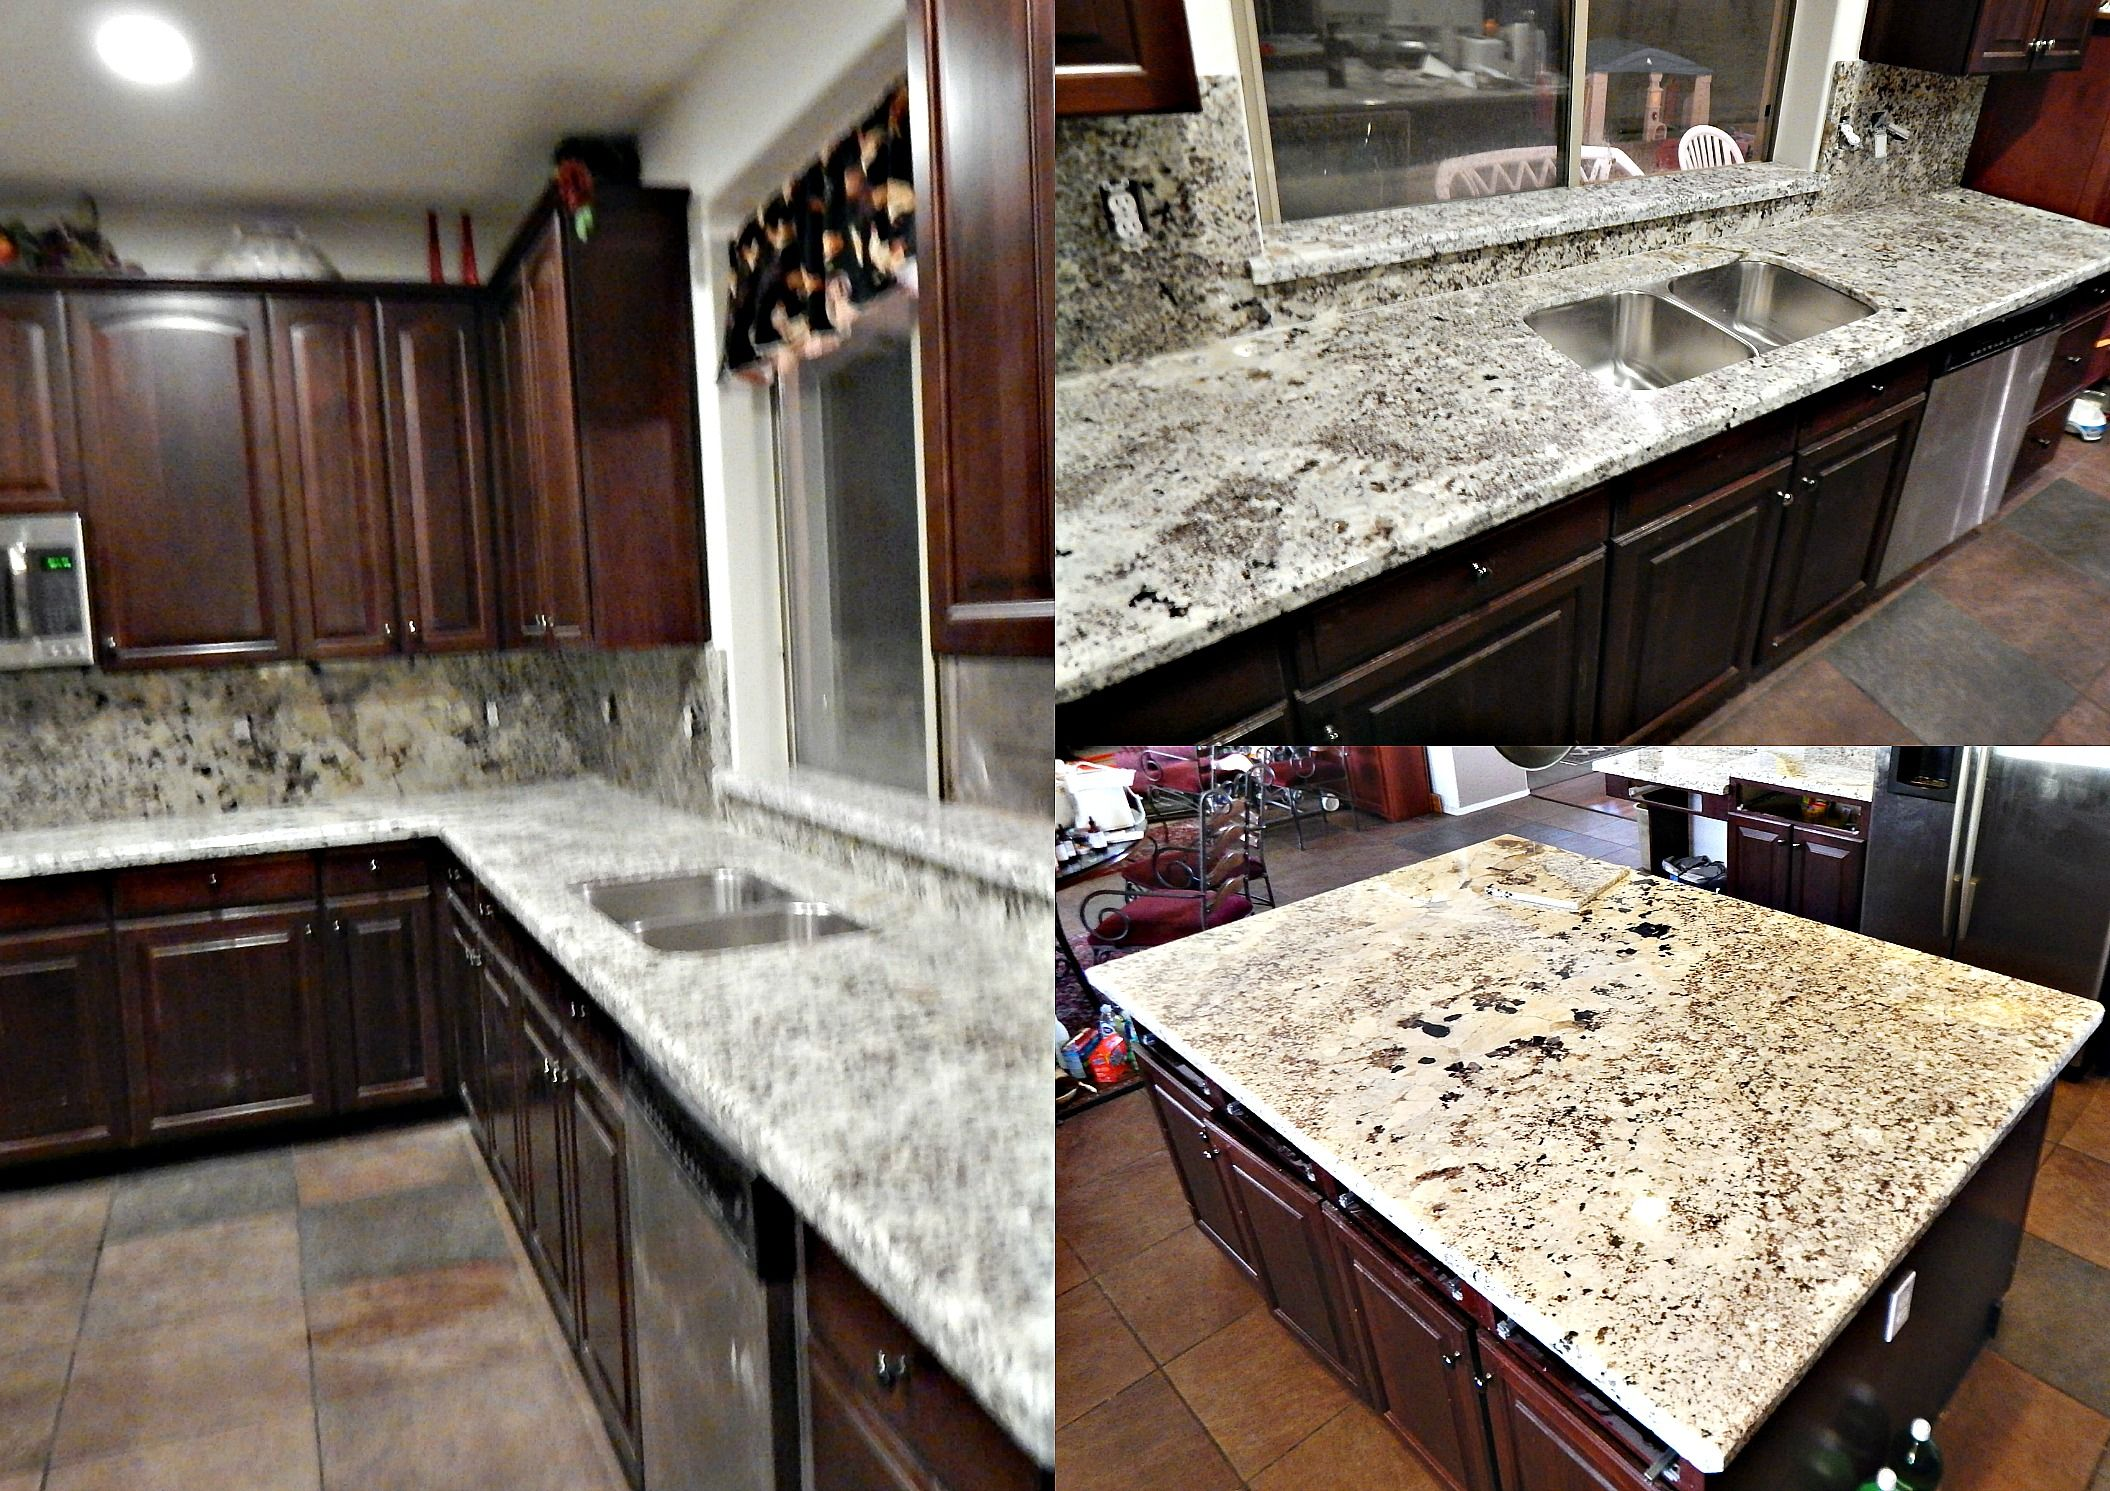 Countertop Remodel With Alaska Classic Granite, Top Bevel Edge, 50/50  Stainless Steel Under Mount Sink.